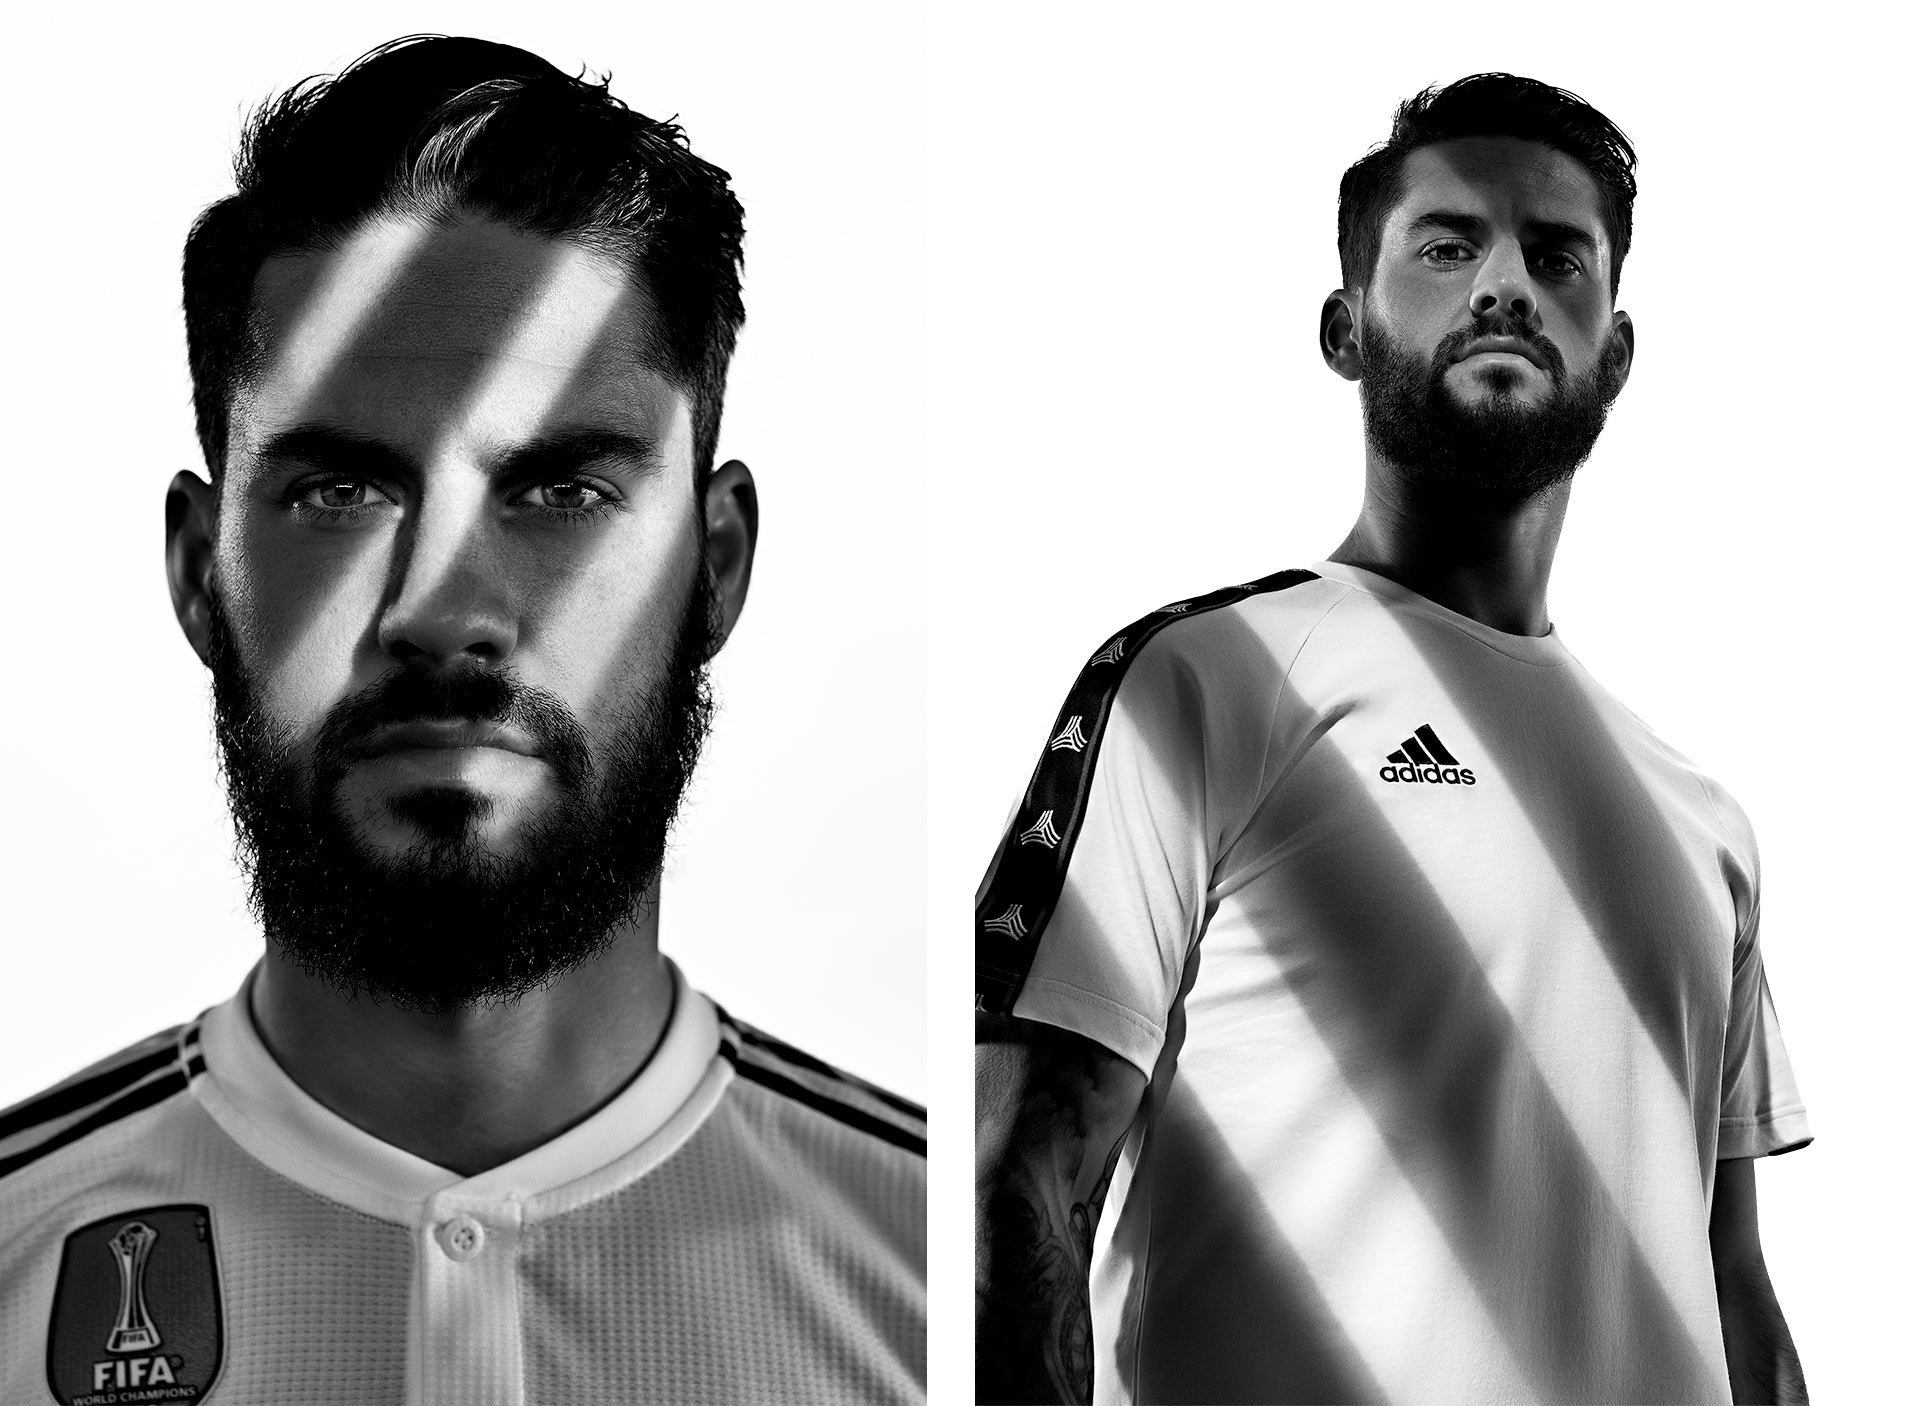 27838d74e Isco joins a strong pool of La Liga talent signed with adidas including Lionel  Messi